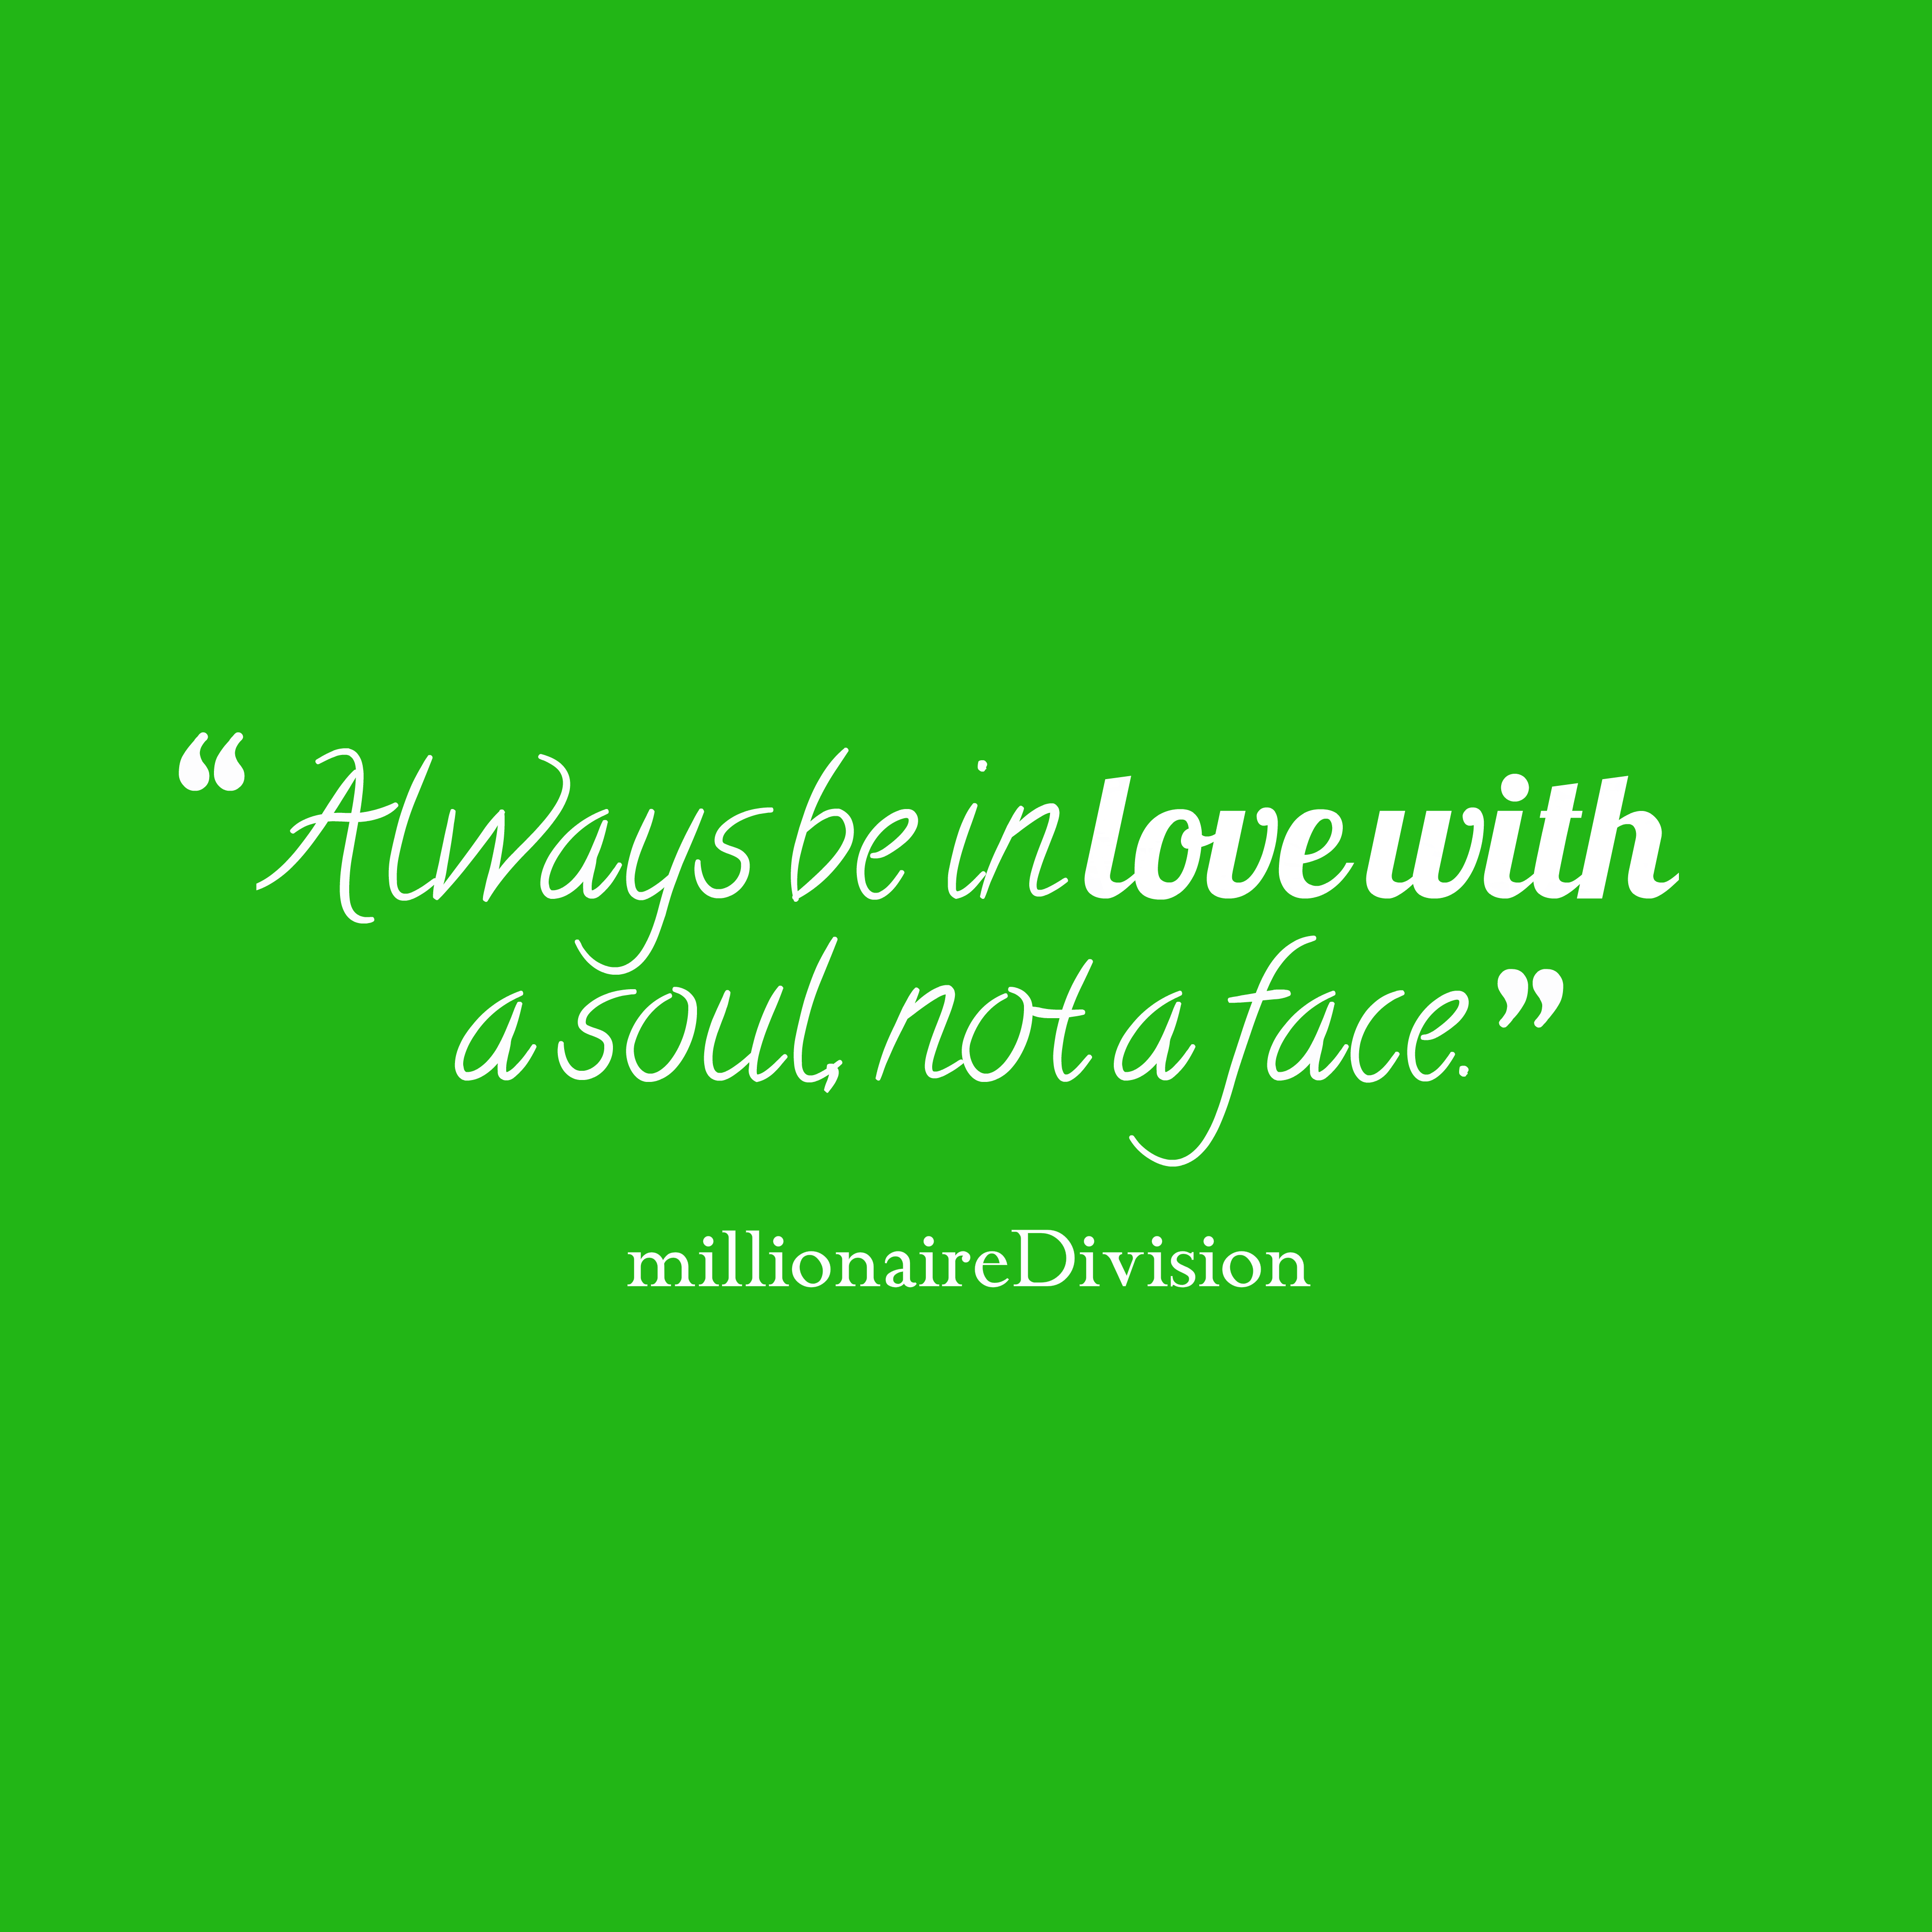 Quotes image of Always be in love with a soul, not a face.